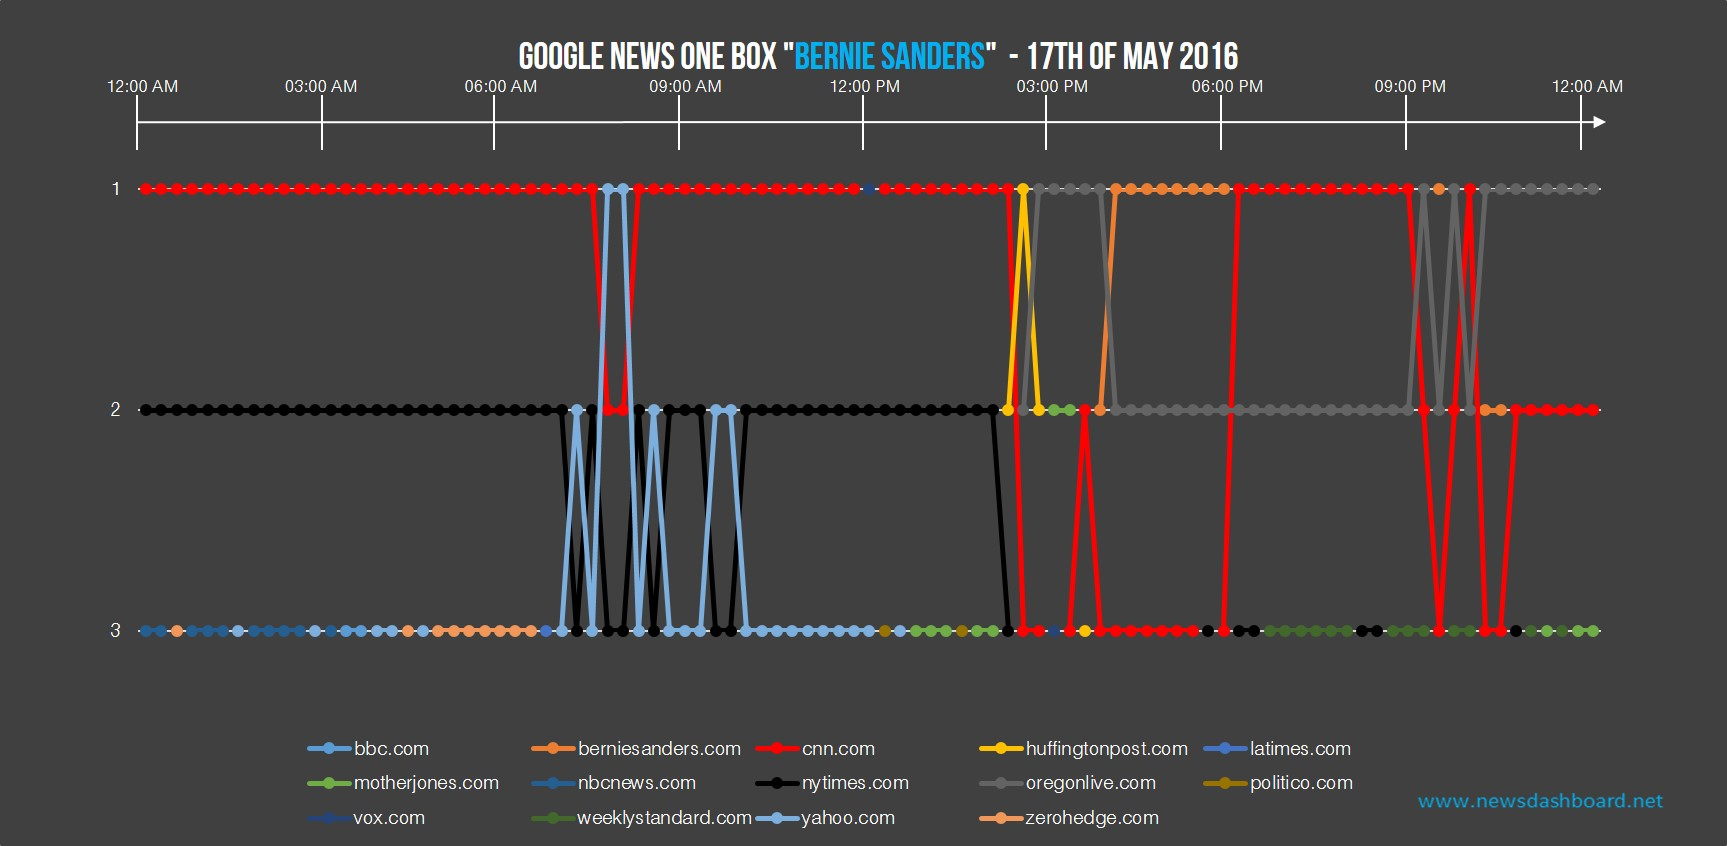 nytimes.com and oregonlive.com were also often in the Google News Box.